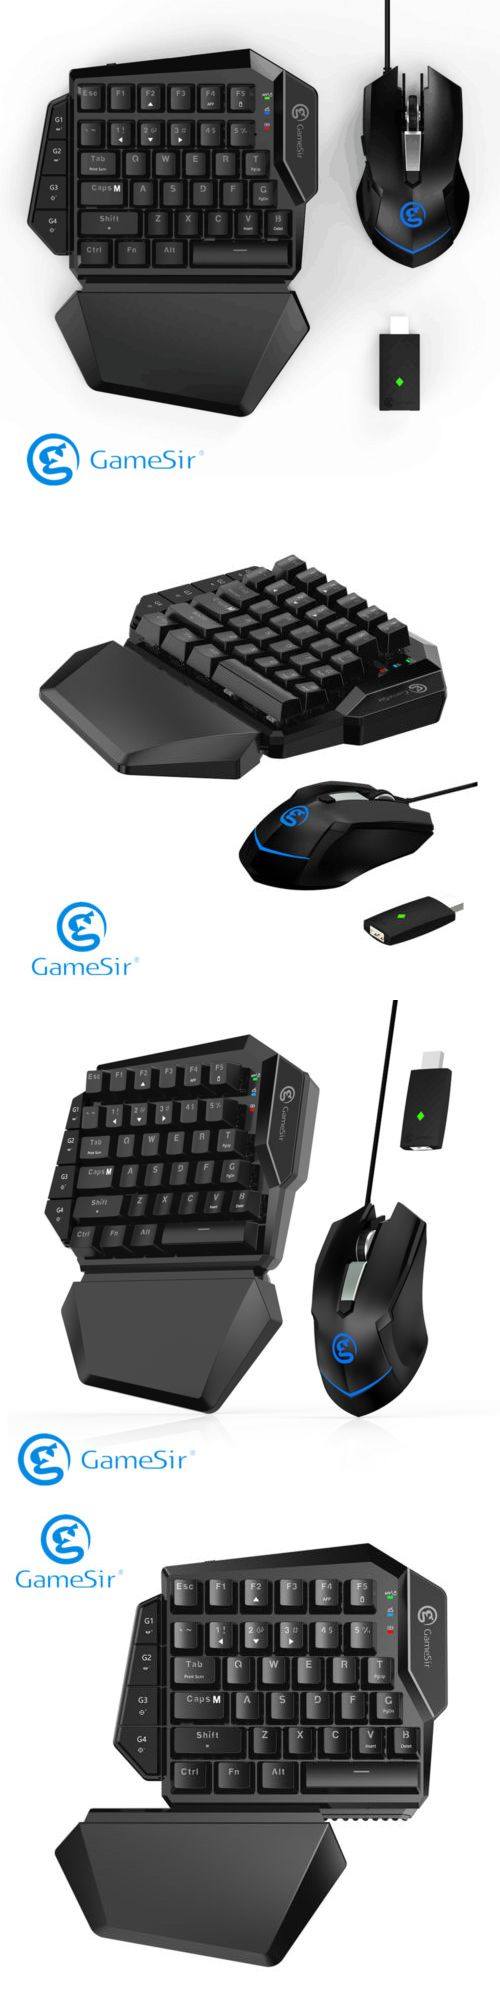 9c70fbf2d46 Keyboards and Keypads 172510: Gamesir Vx Keyboard Mouse Adapter For Xbox  One Ps4 Ps3 Nintendo